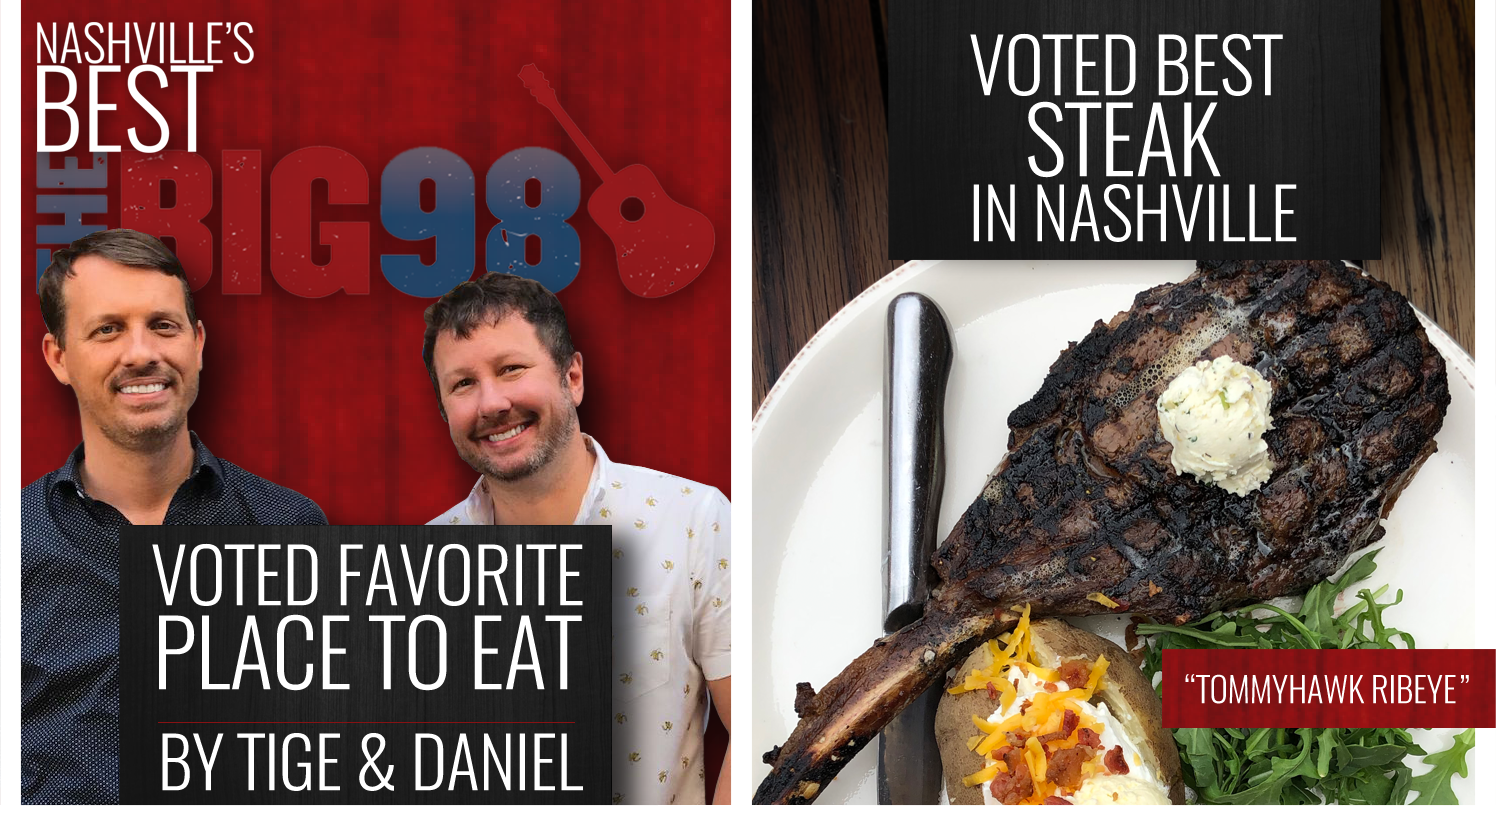 Tige & Daniel Best Steak and Best Place To Eat